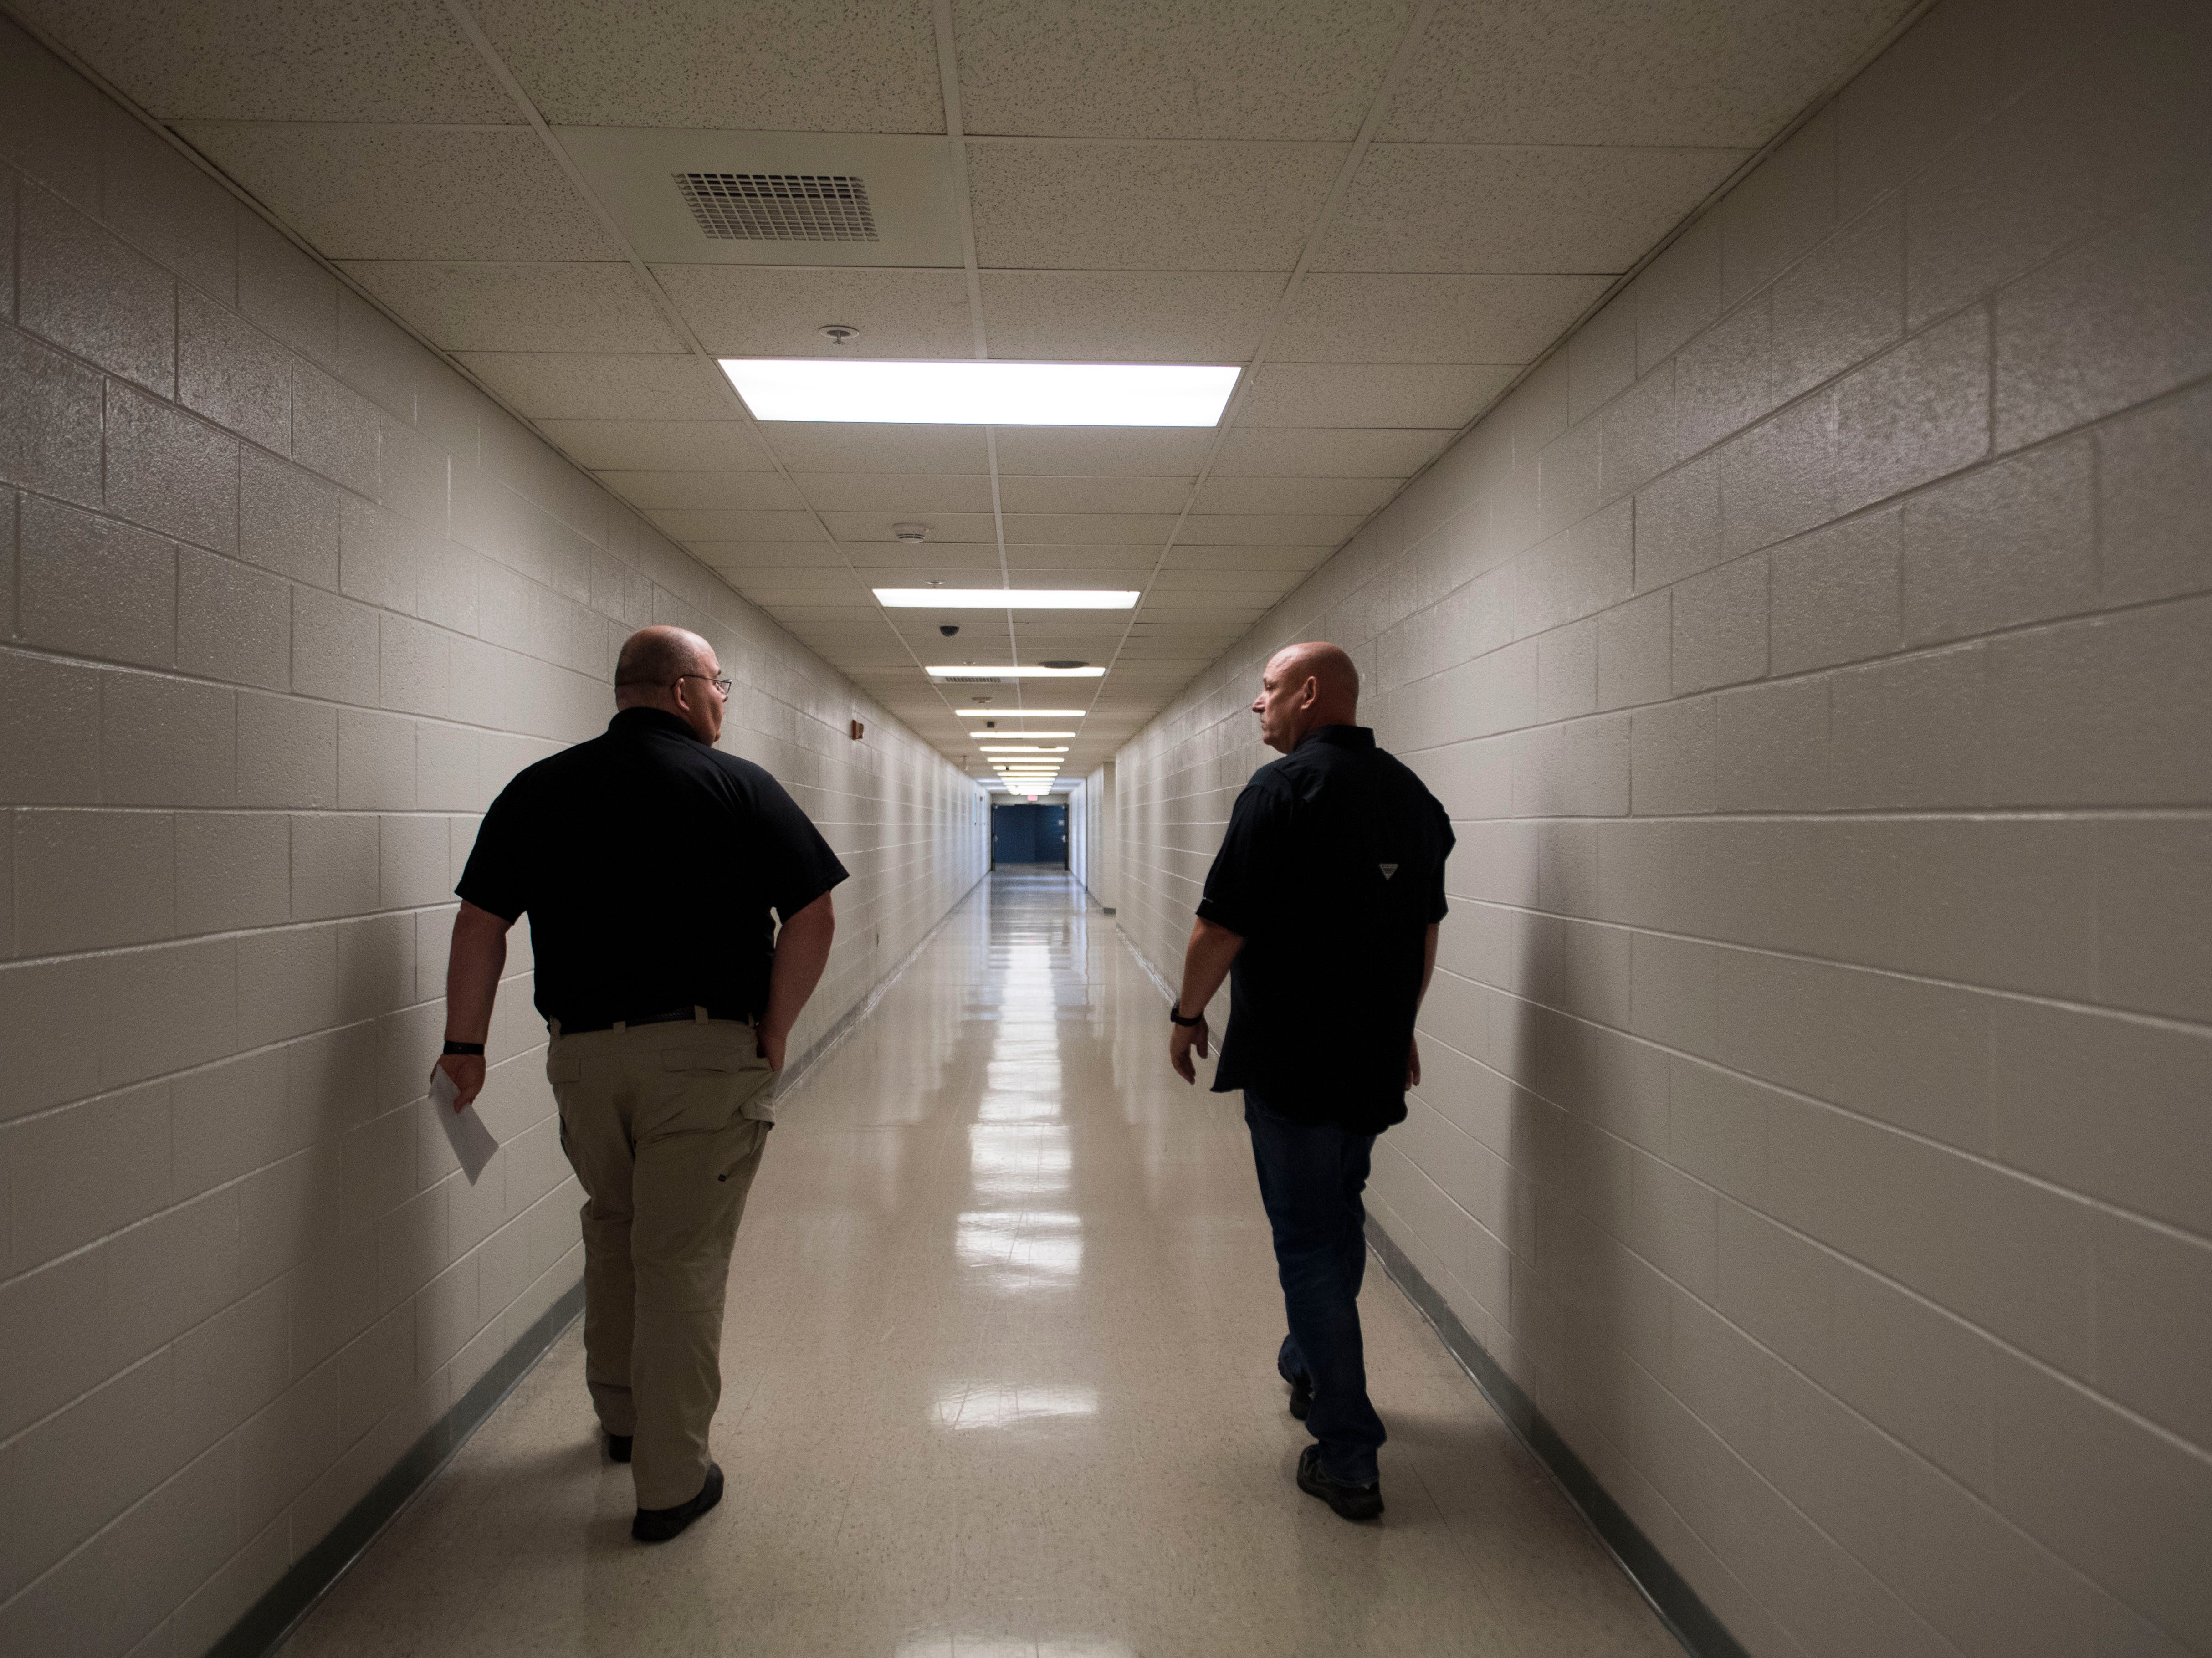 At left Capitan Terry Wilshire and Director of Corrections for the Knox County Sheriff's Office Rodney Bivens, walk down a hallway at the Knox County Jail in Knox County Tuesday, May 15, 2018.at the Knox County Jail in Knox County Tuesday, May 15, 2018.